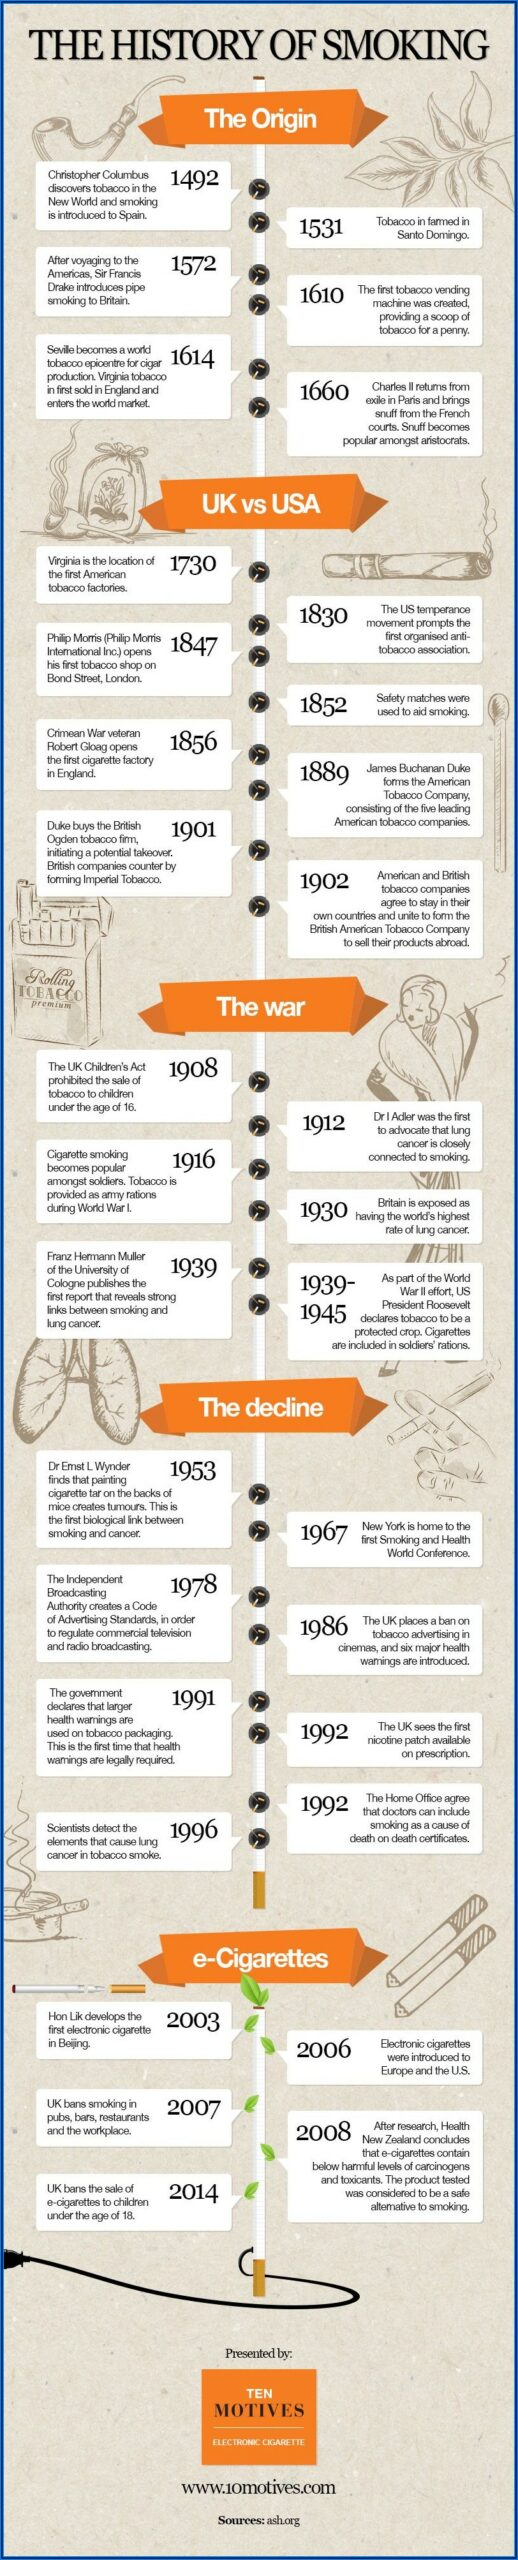 History Of Tobacco Control Timeline